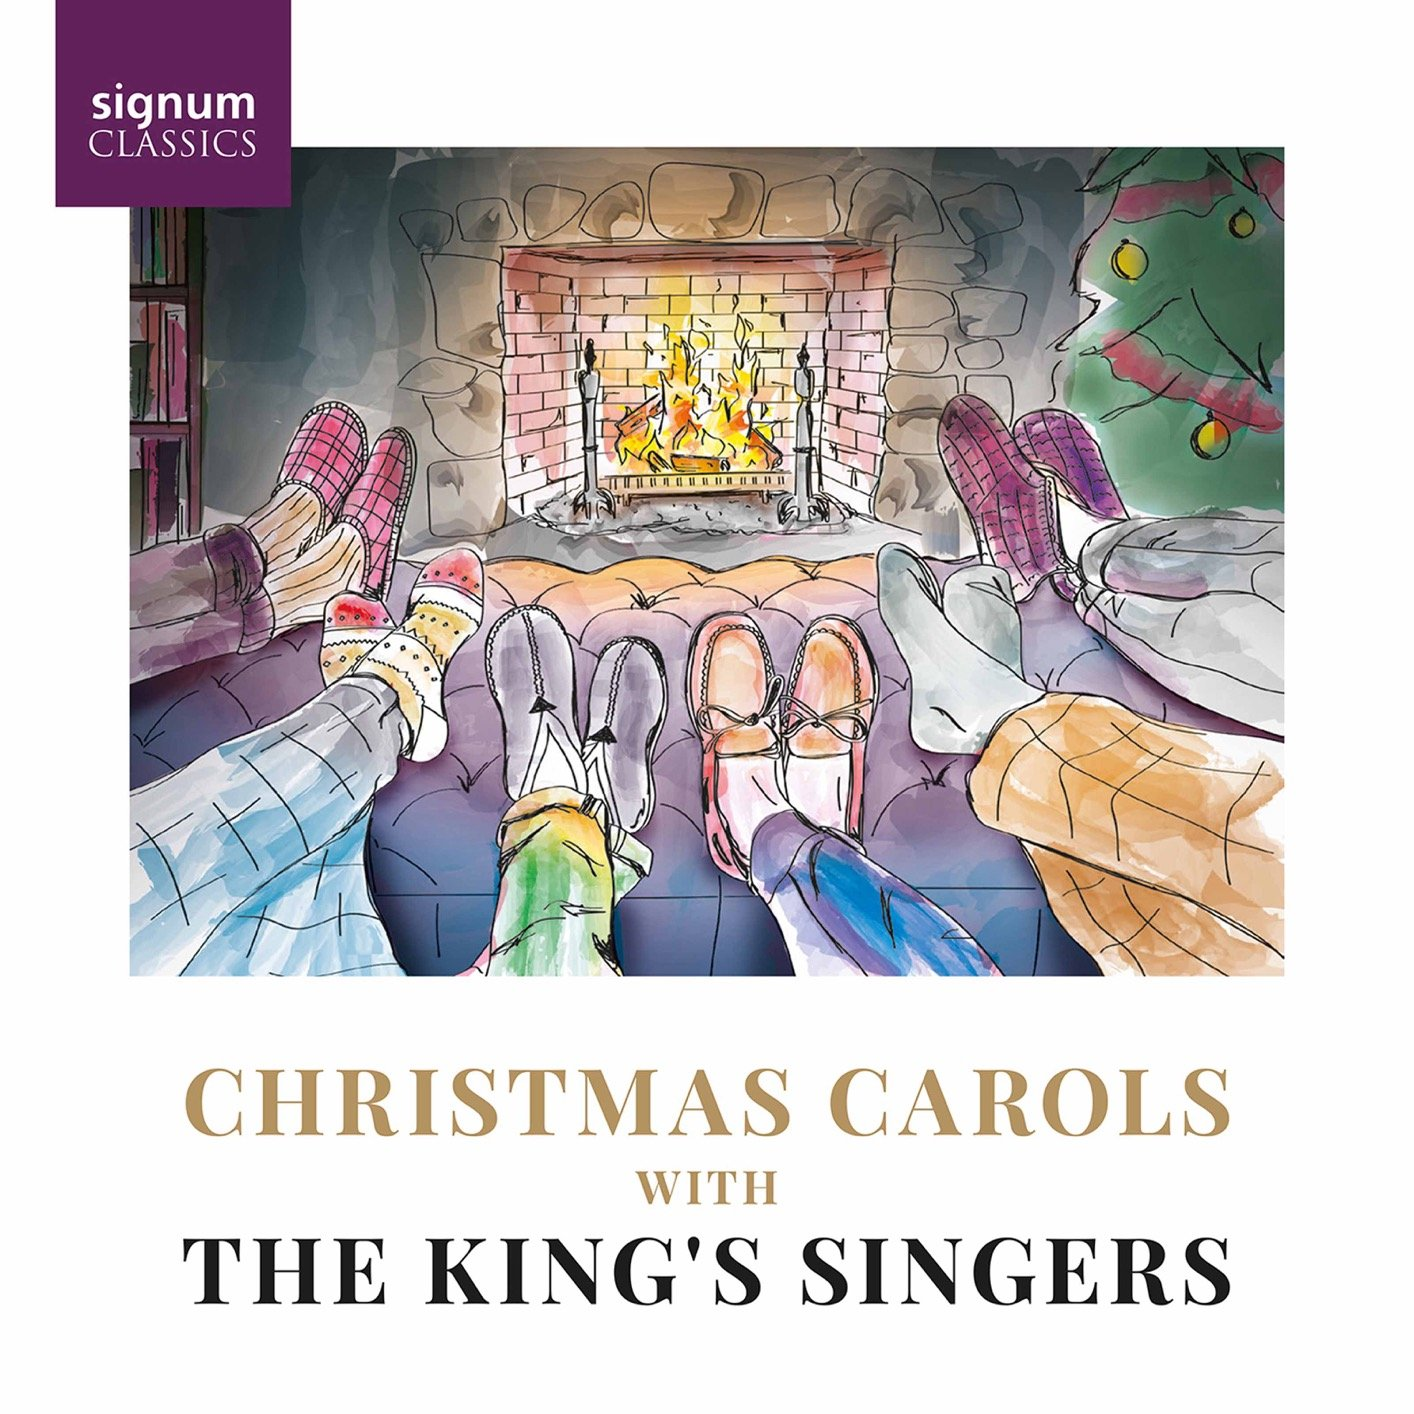 The King's Singers - Christmas Carols with The King's Singers (2021)